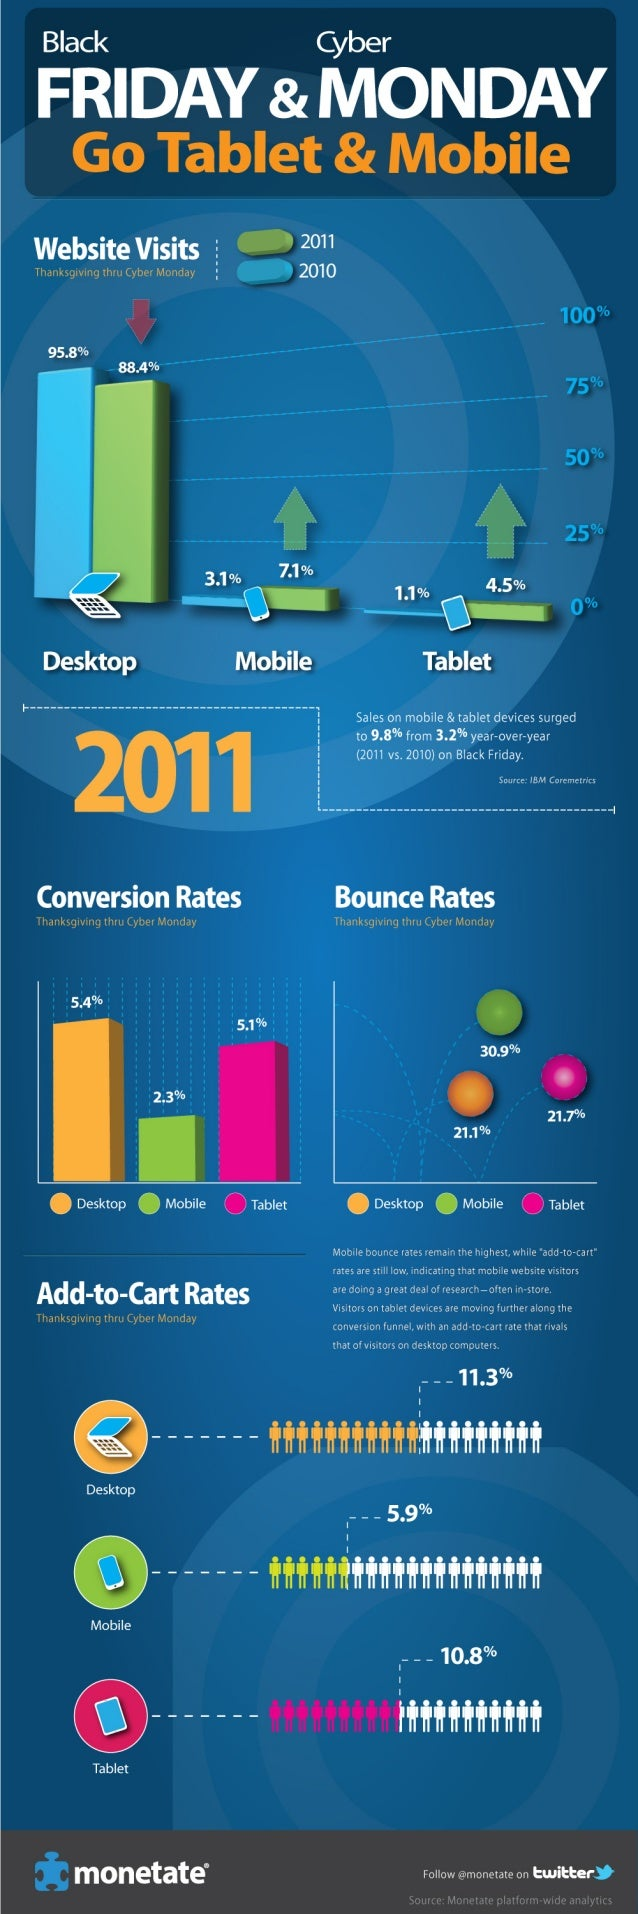 Black Friday and Cyber Monday Go Tablet & Mobile